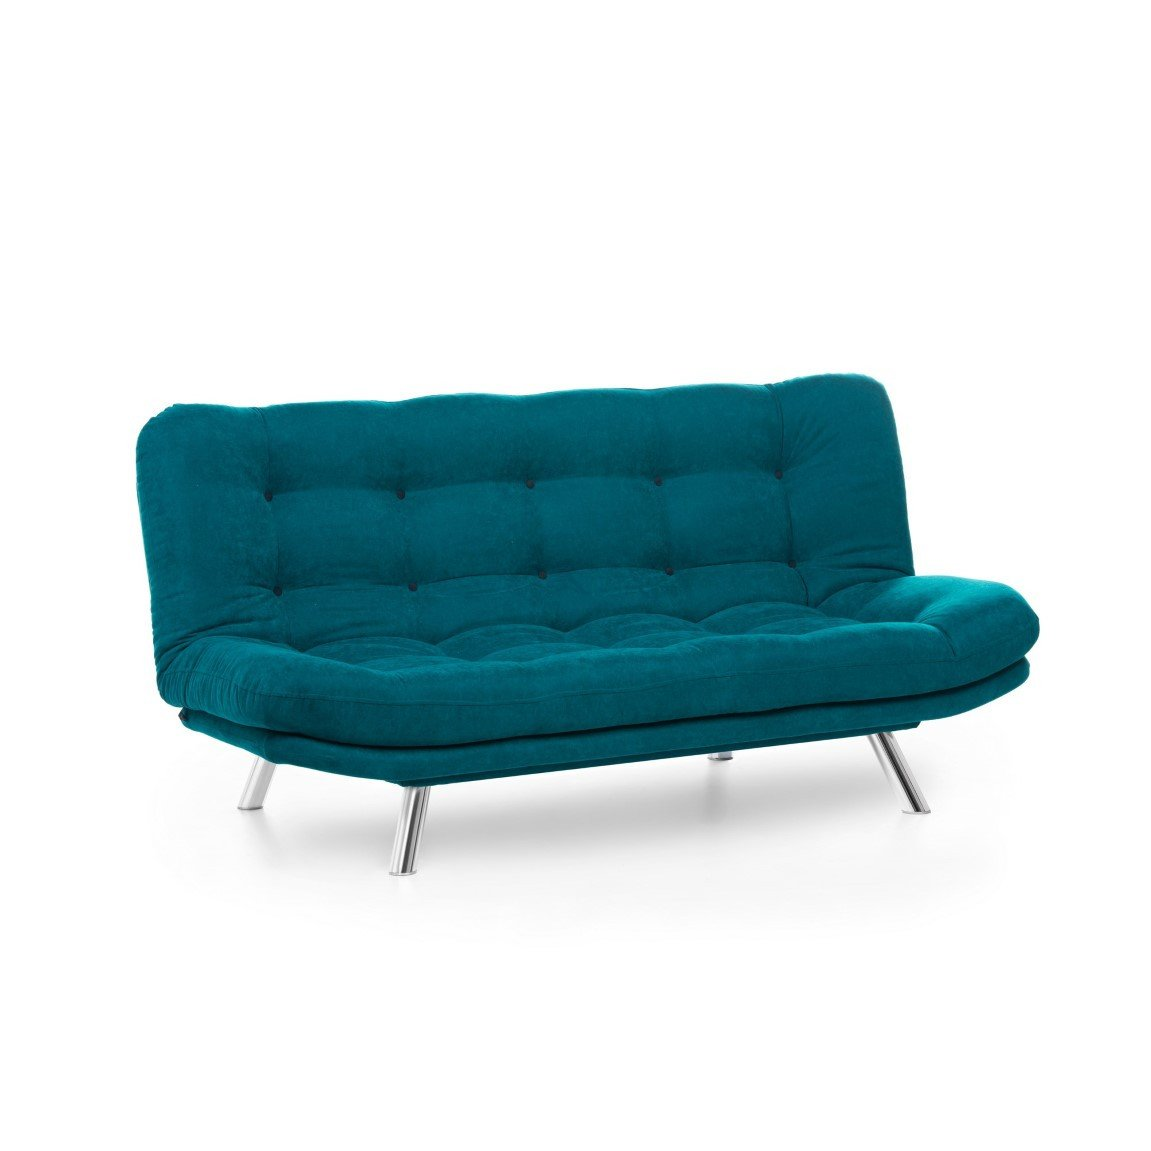 3 Seater Sofabed Misa | Green